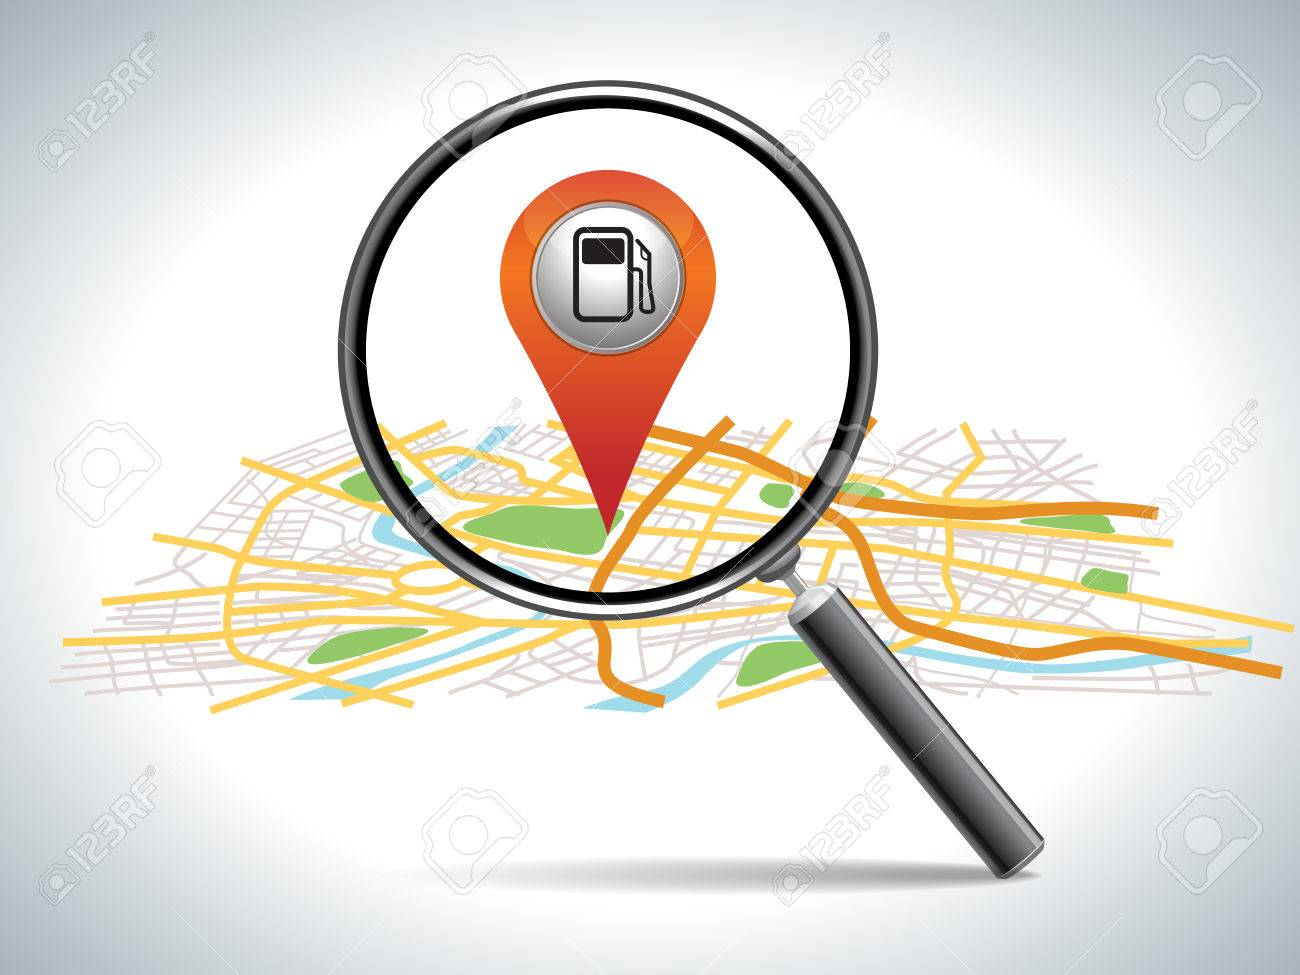 Find Gas Station Pin Pointer On Map Location Royalty Free - Los angeles map location